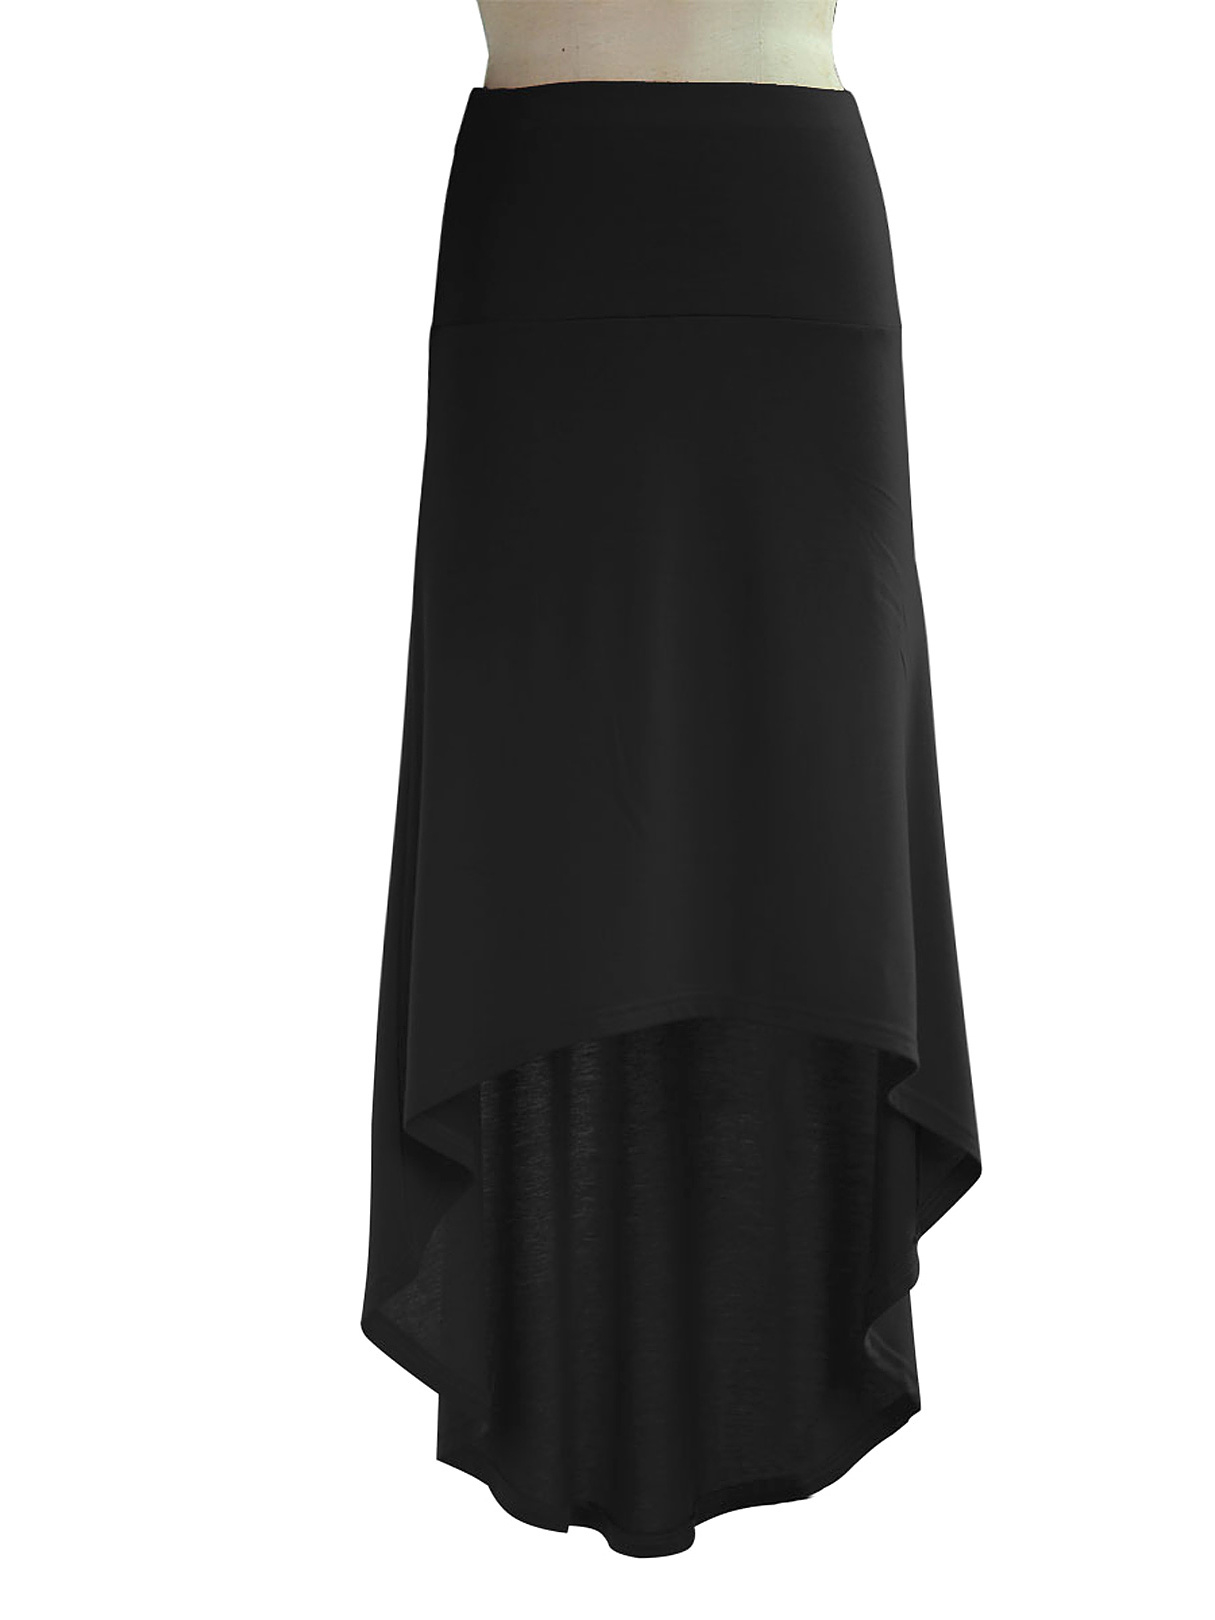 Black High-low Hem Pencil Skirt knotted cropped top and pencil skirt